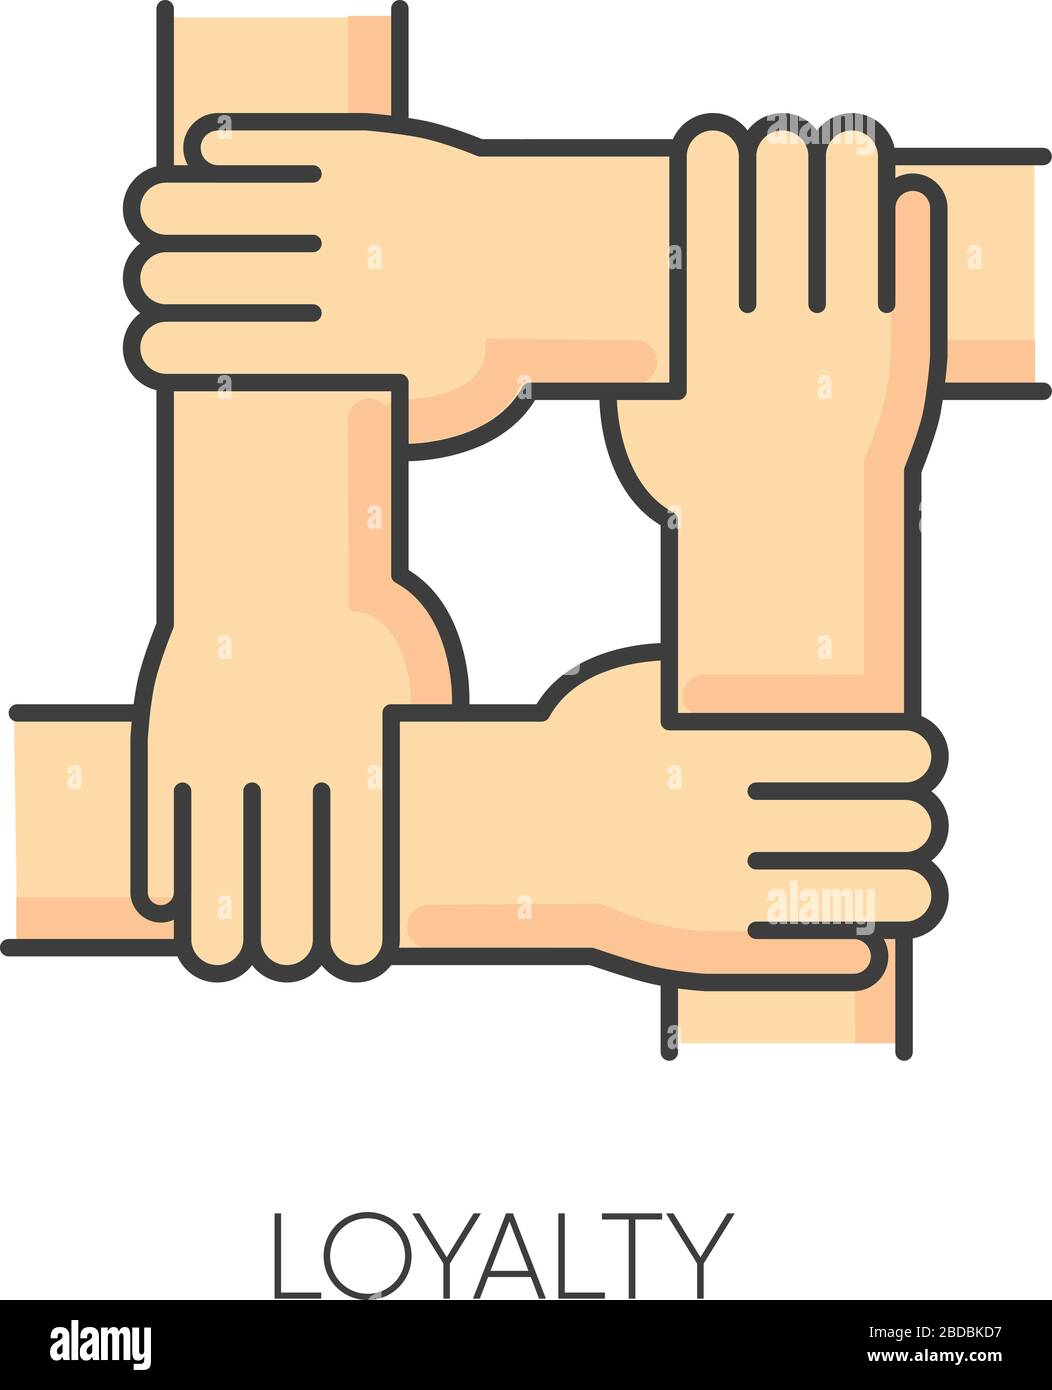 Loyalty Rgb Color Icon Social Connection Collective Bonding Fellowship Friendship Unity Teamwork And Faithfulness Symbol People Holding Hands Stock Vector Image Art Alamy